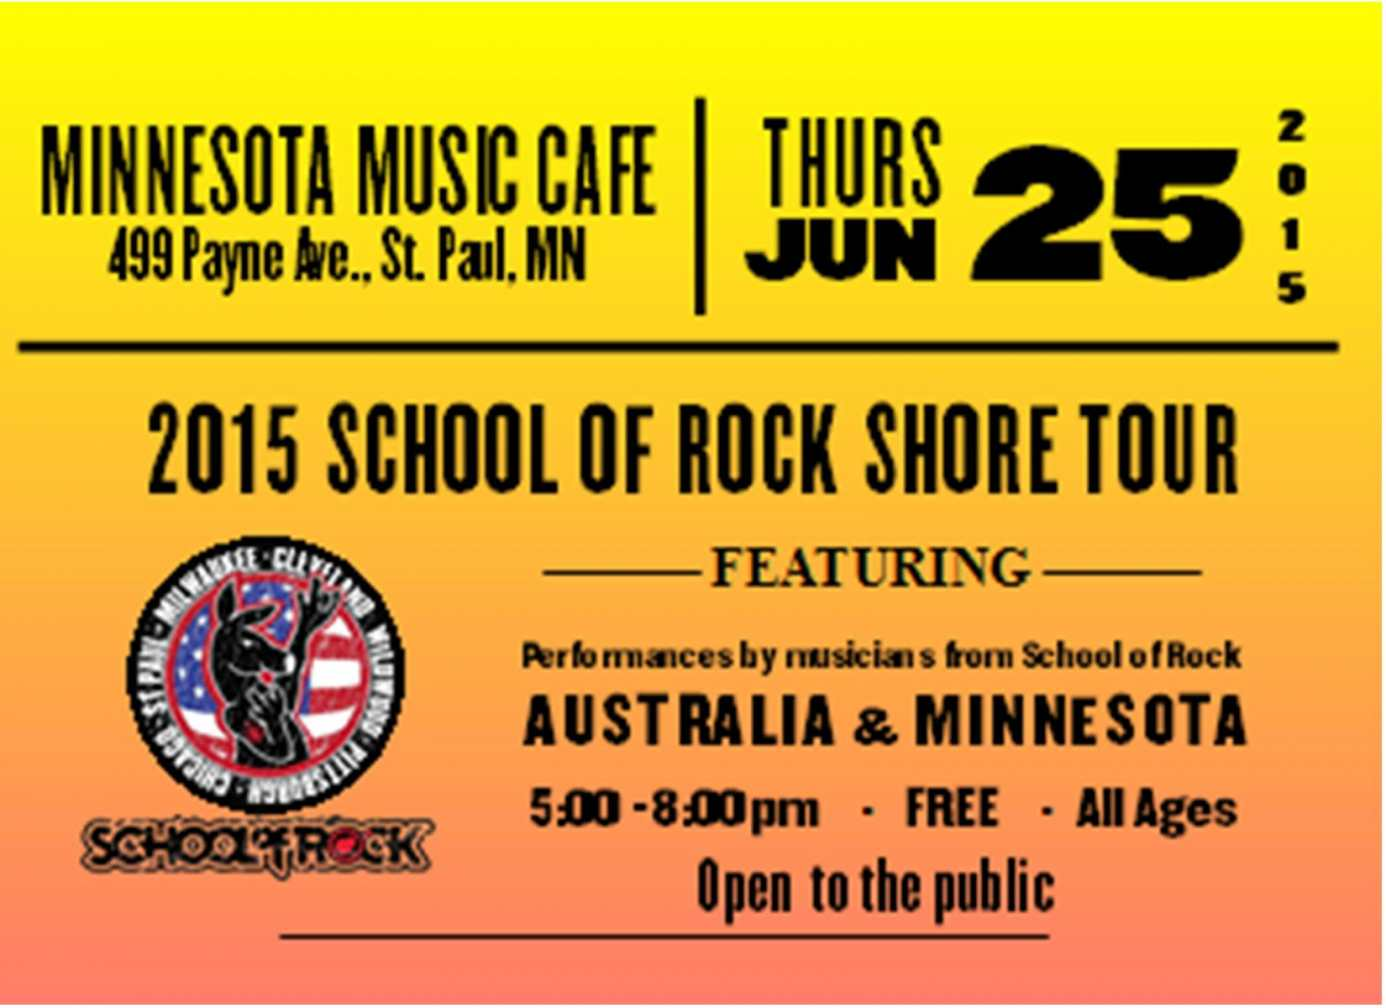 June 25, free all-ages concert in St. Paul MN